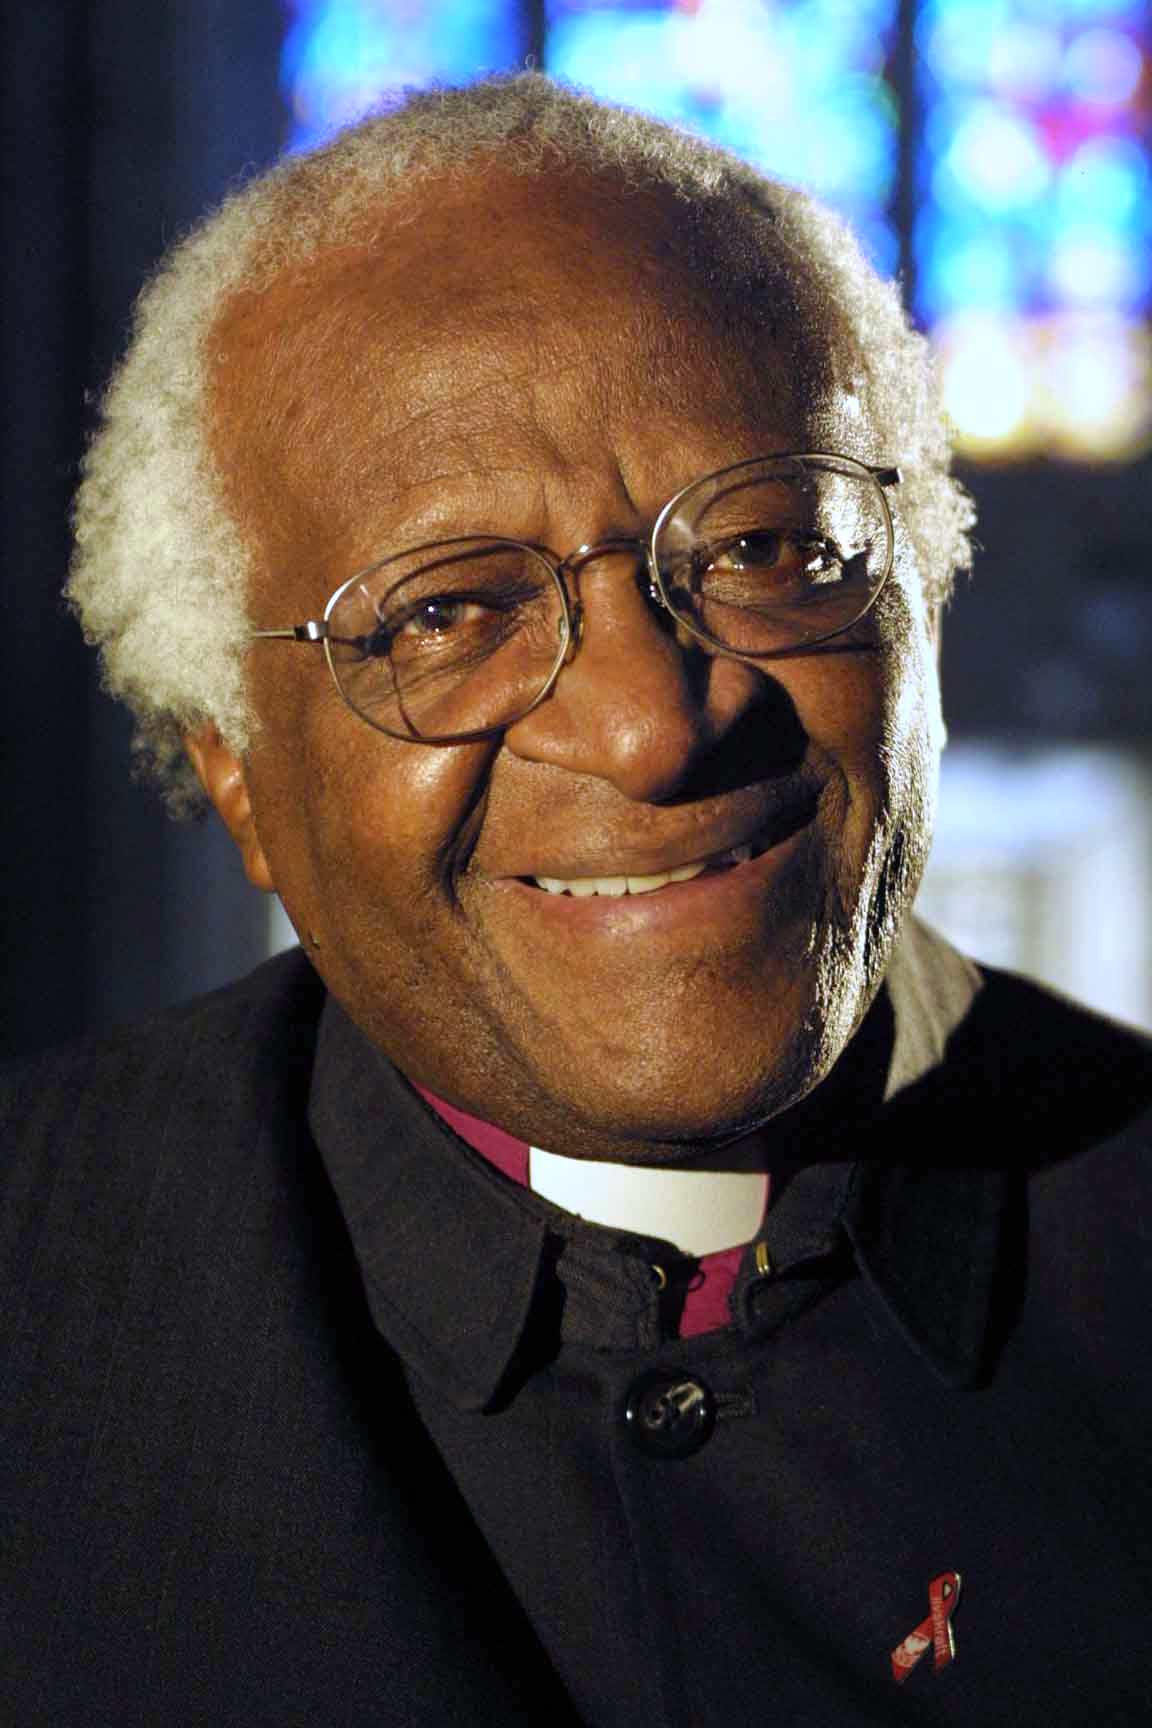 Desmond tutu on homosexuality in japan